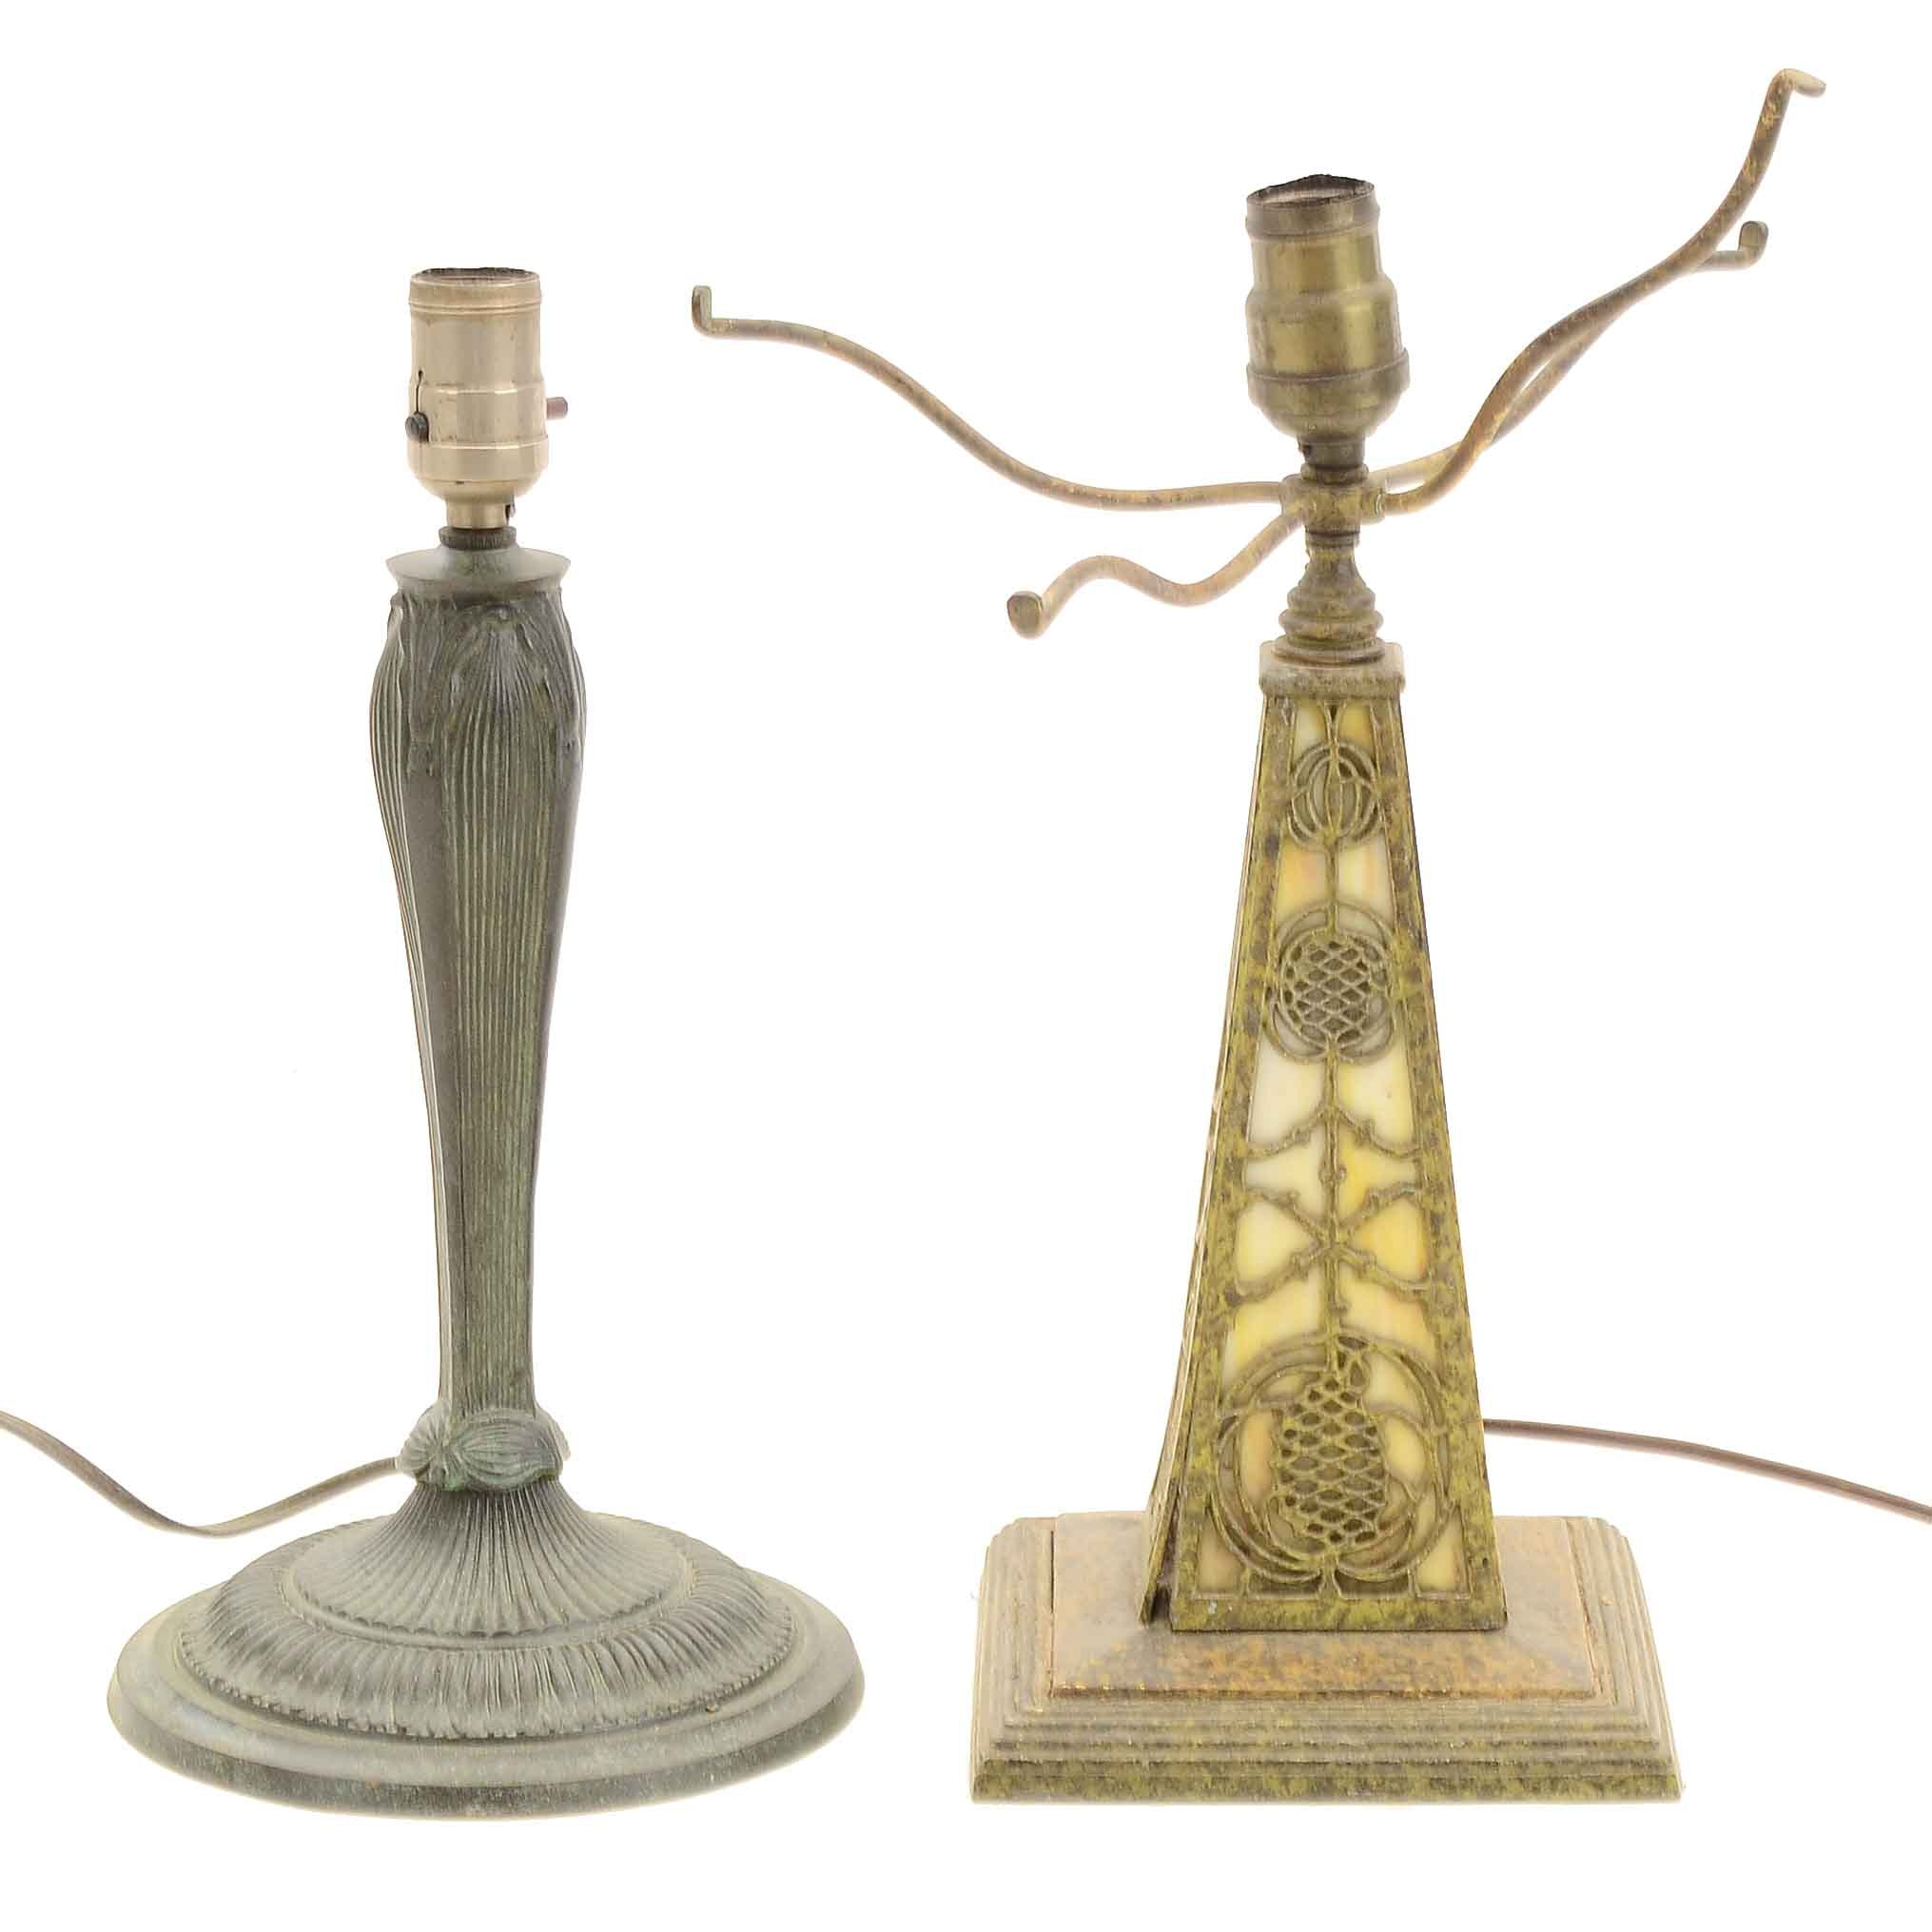 Pair of Art Deco Style Lamp Bases